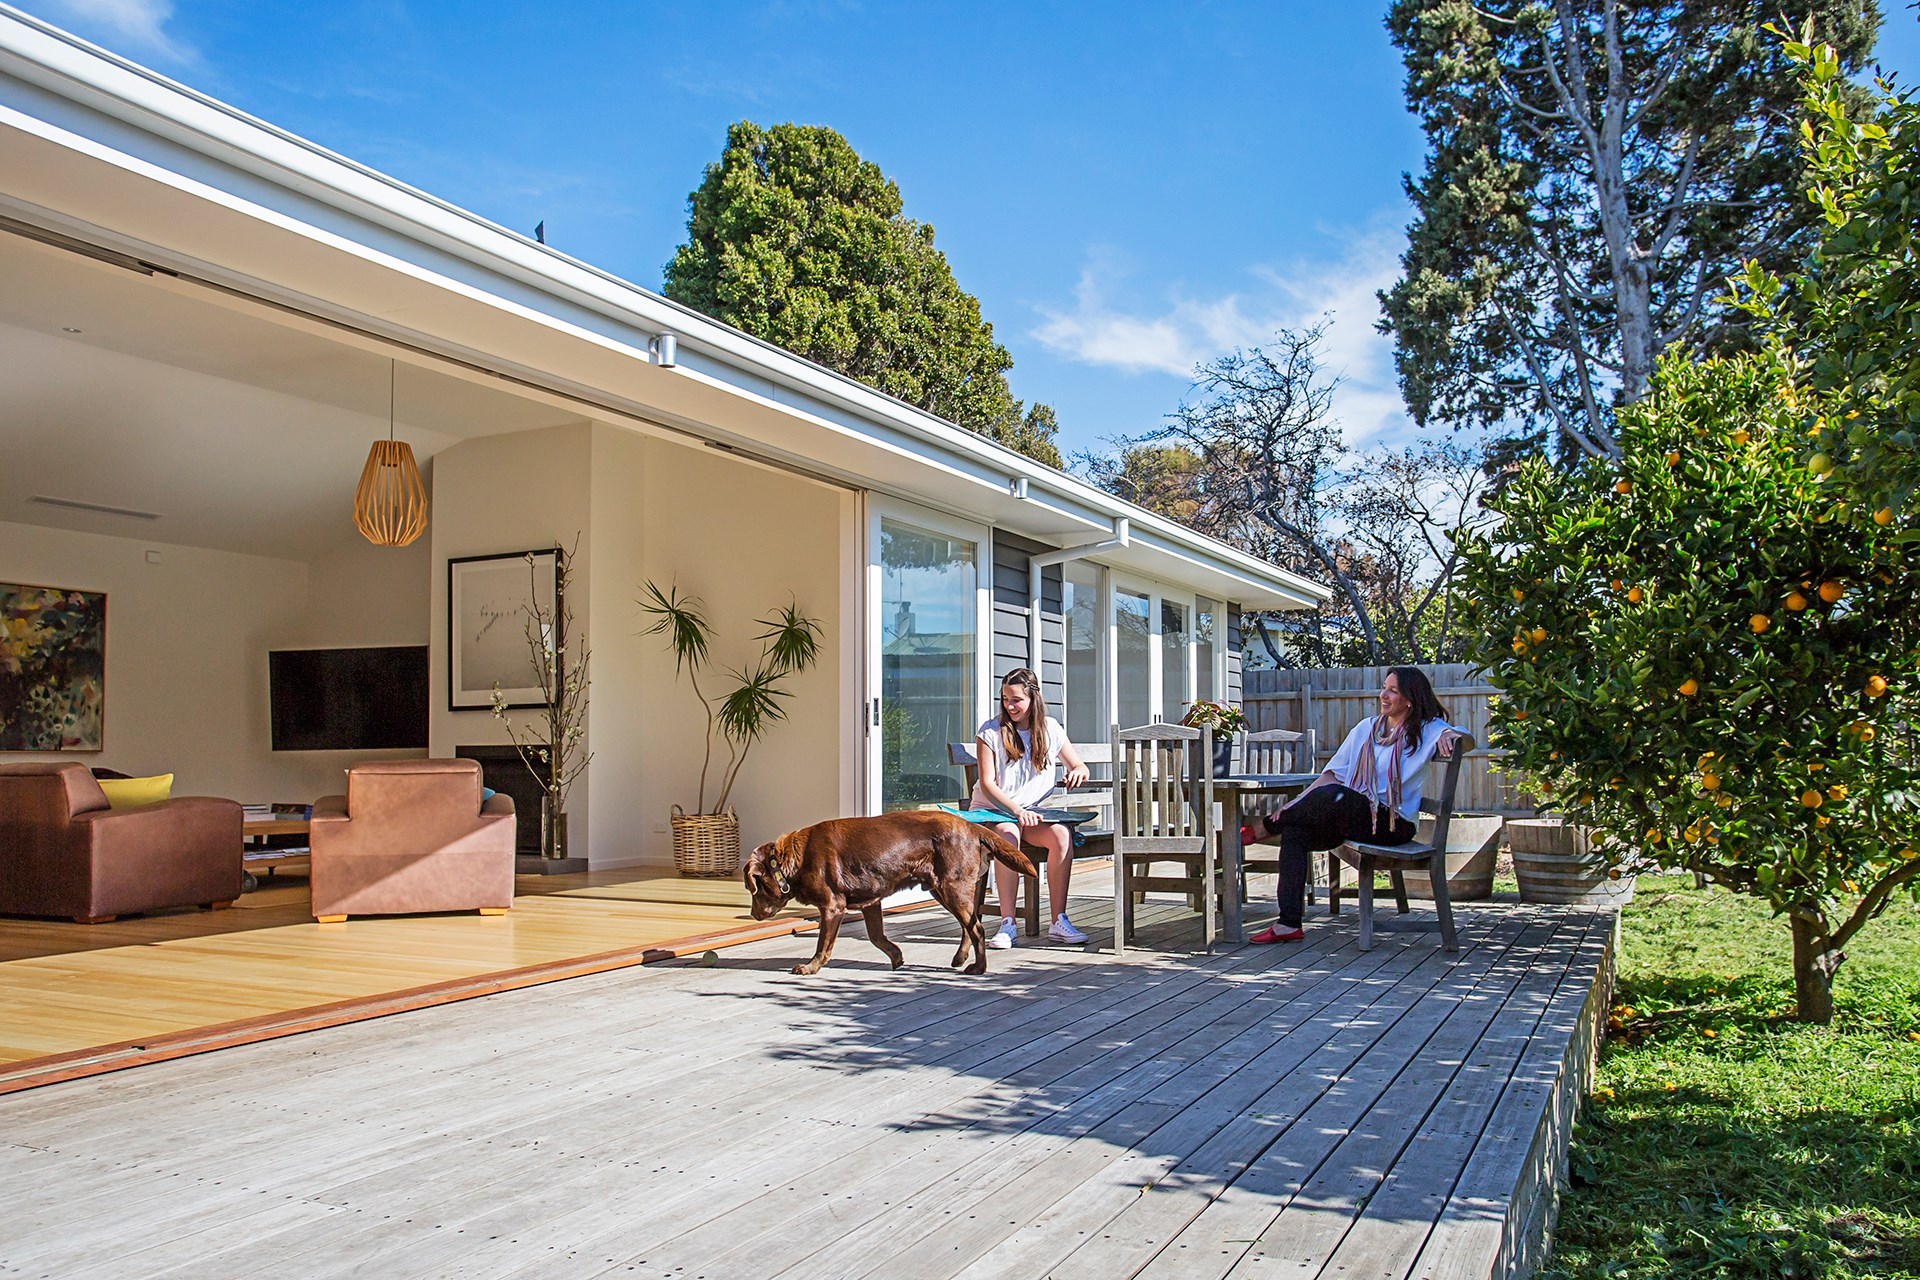 **Vickie Sayer** A light-filled extension and exterior overhaul transformed this 1966 beach house that this family have affectionately called 'The Bird House' in their grandmother's honour. [See the full home here](http://www.homestolove.com.au/beach-house-transformed-to-suit-next-generation-2807) or [vote for this home](http://www.homestolove.com.au/homes-reader-home-of-the-year-4499).